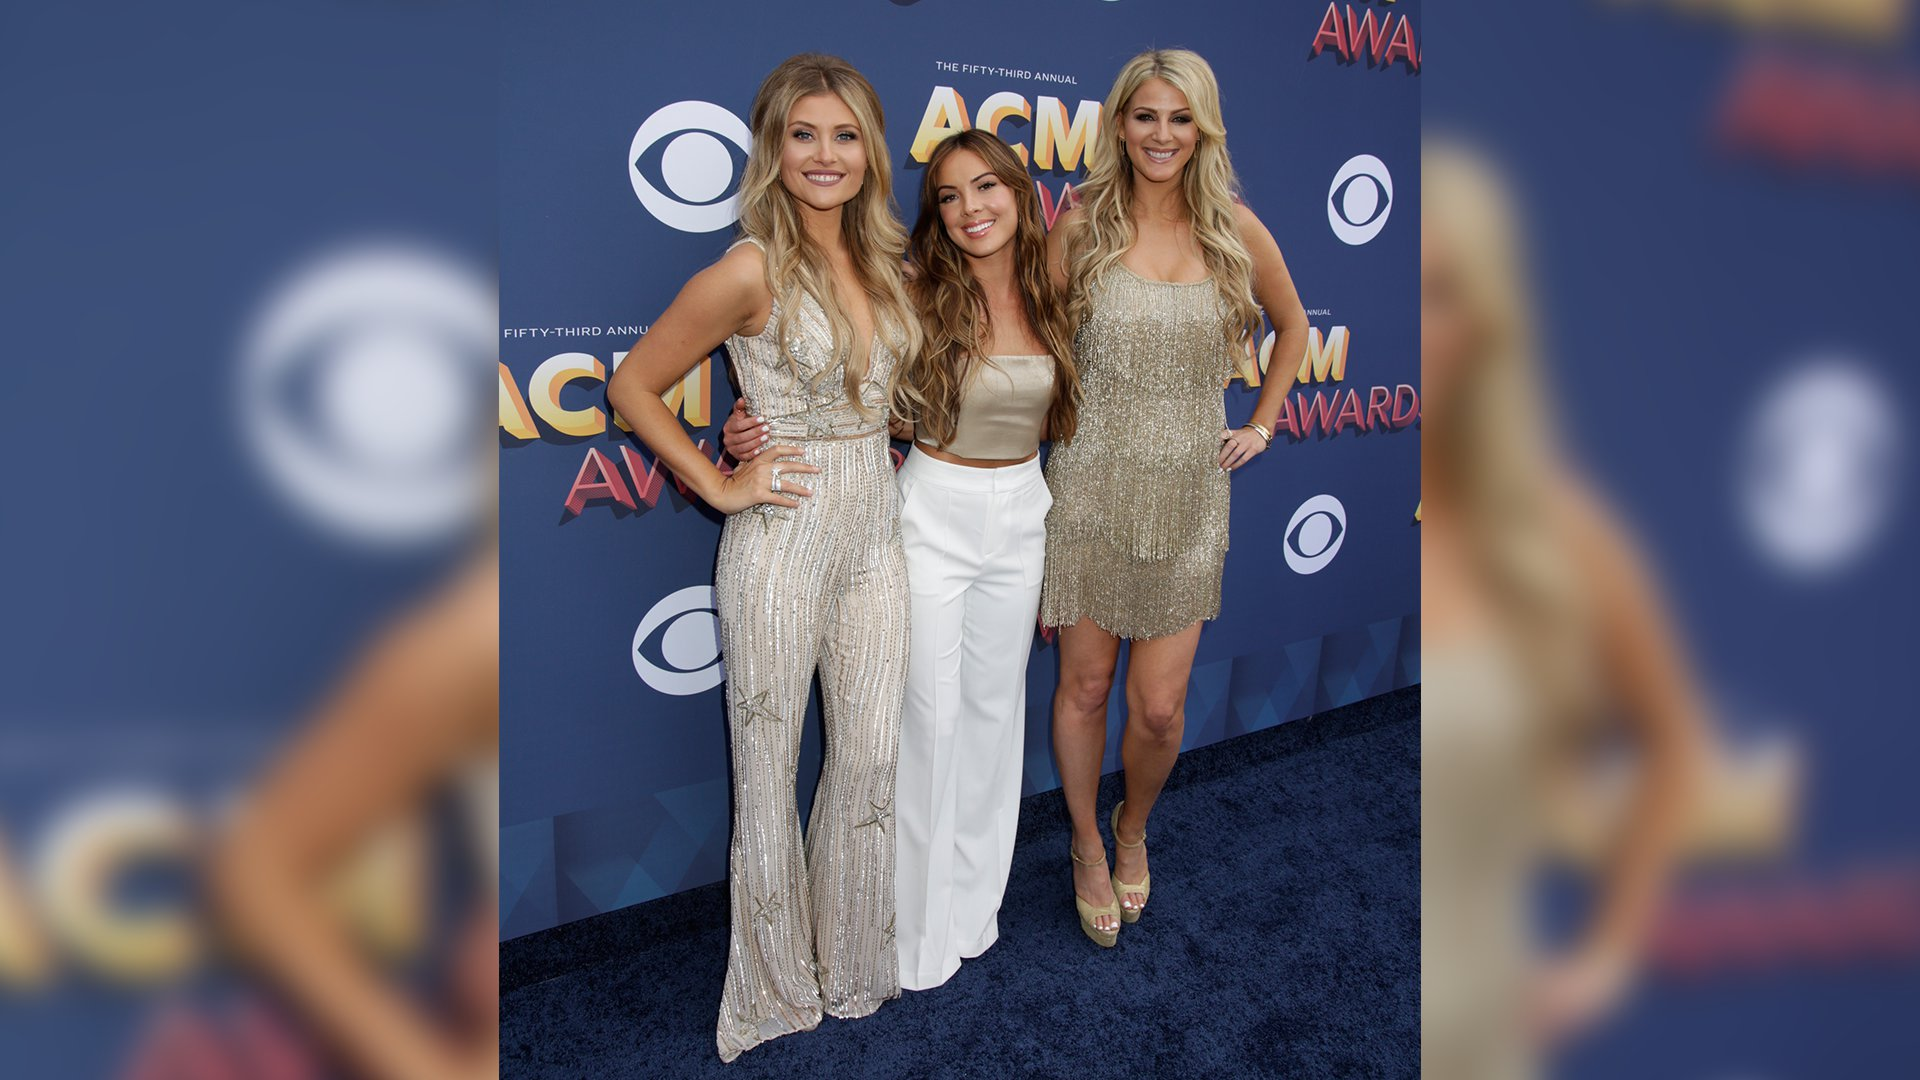 Runaway June manage to stand still for a moment on the 53rd ACM Awards red carpet.